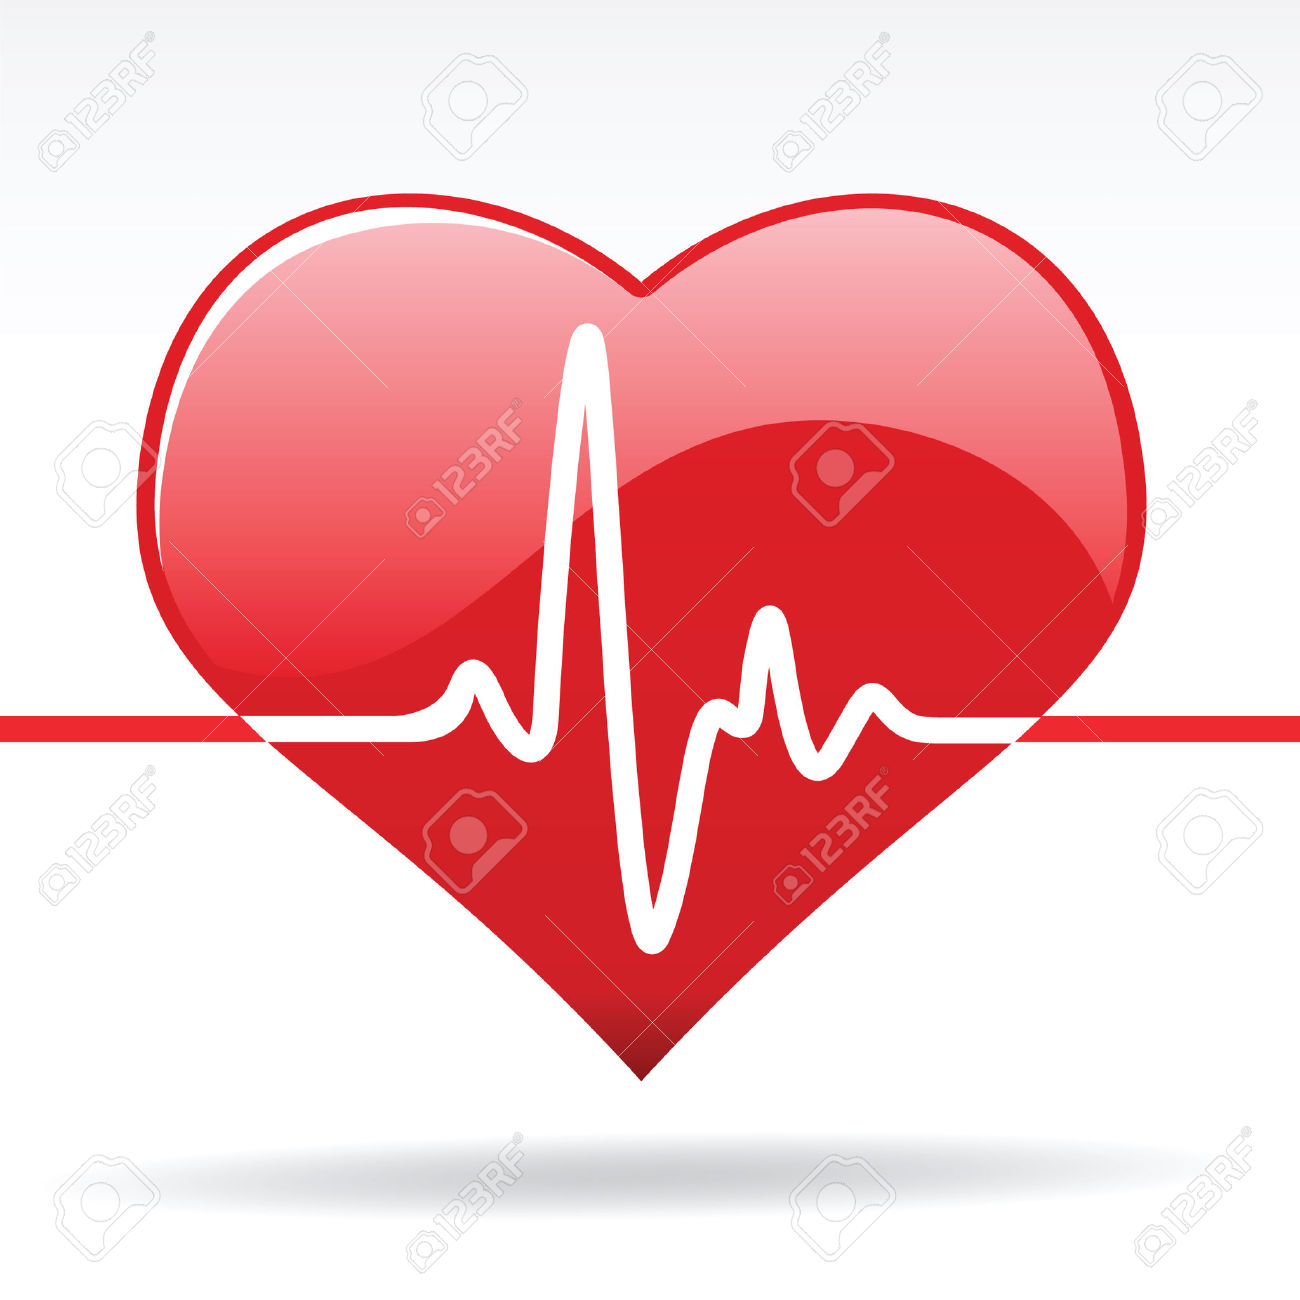 Medical of beating heart. Body clipart animated